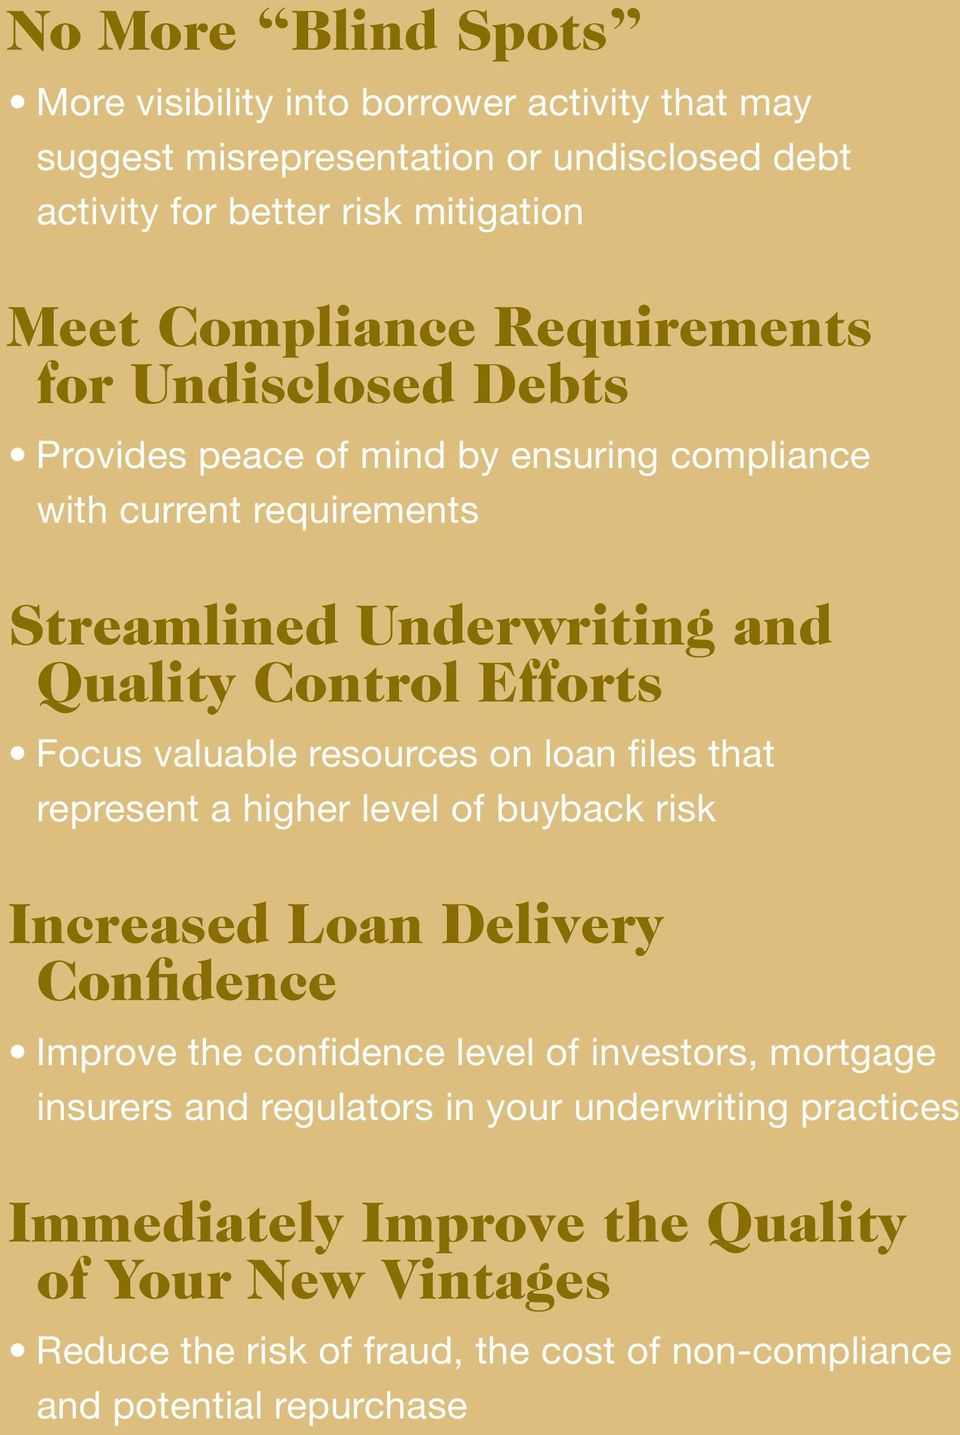 valuable resources on loan files that represent a higher level of buyback risk Increased Loan Delivery Confidence Improve the confidence level of investors, mortgage